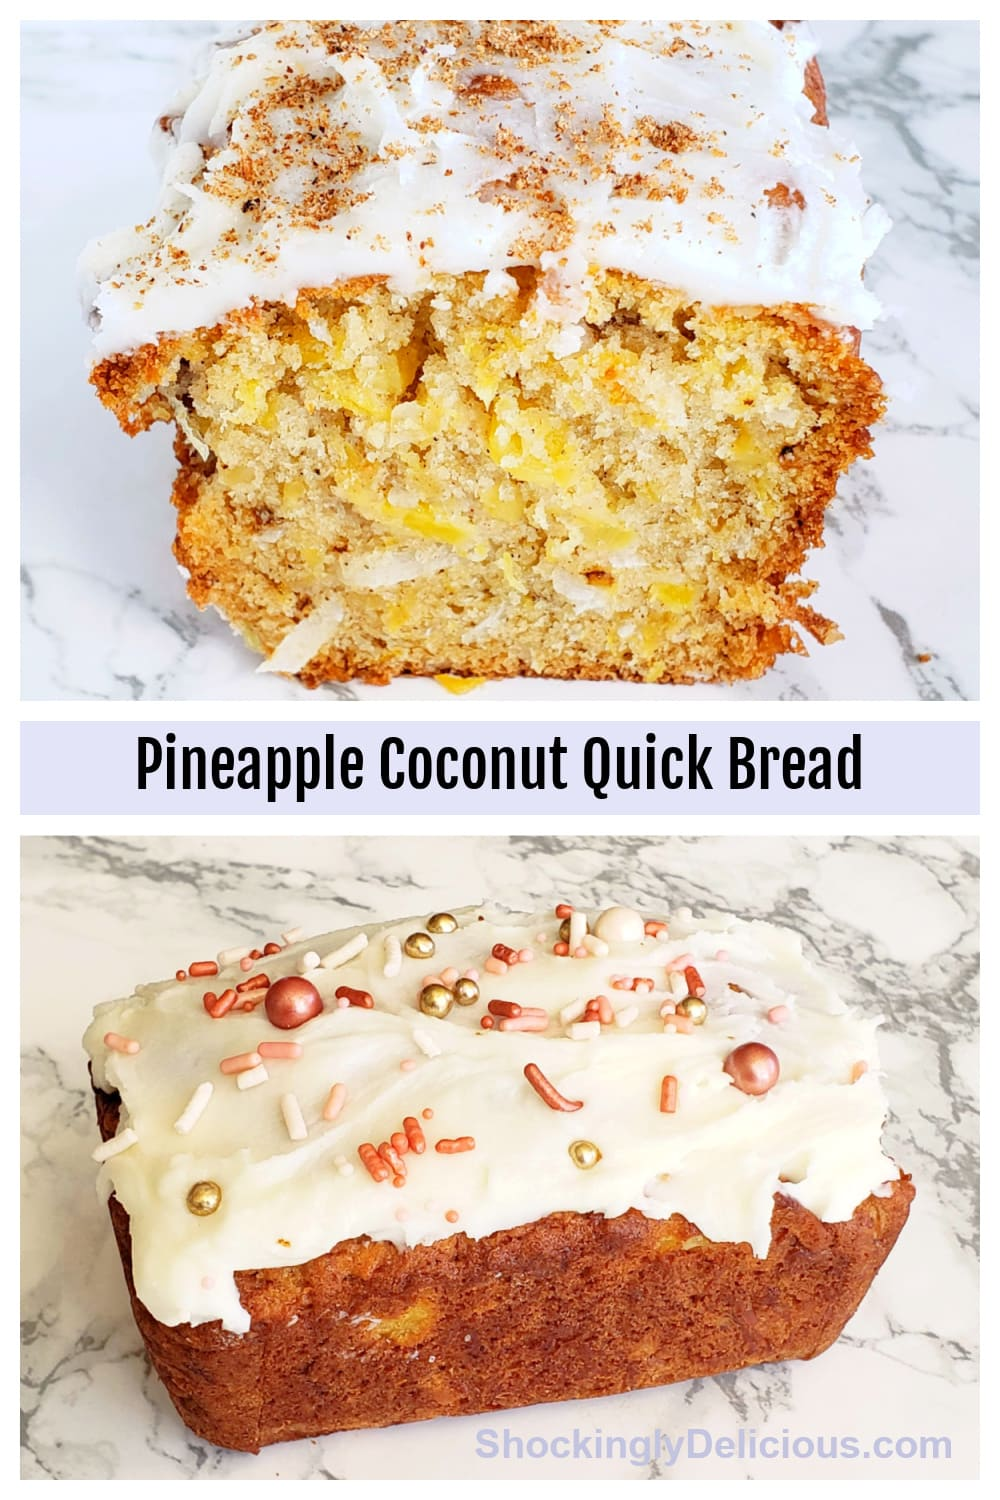 Pineapple Coconut Quick Bread collage of 2 photos